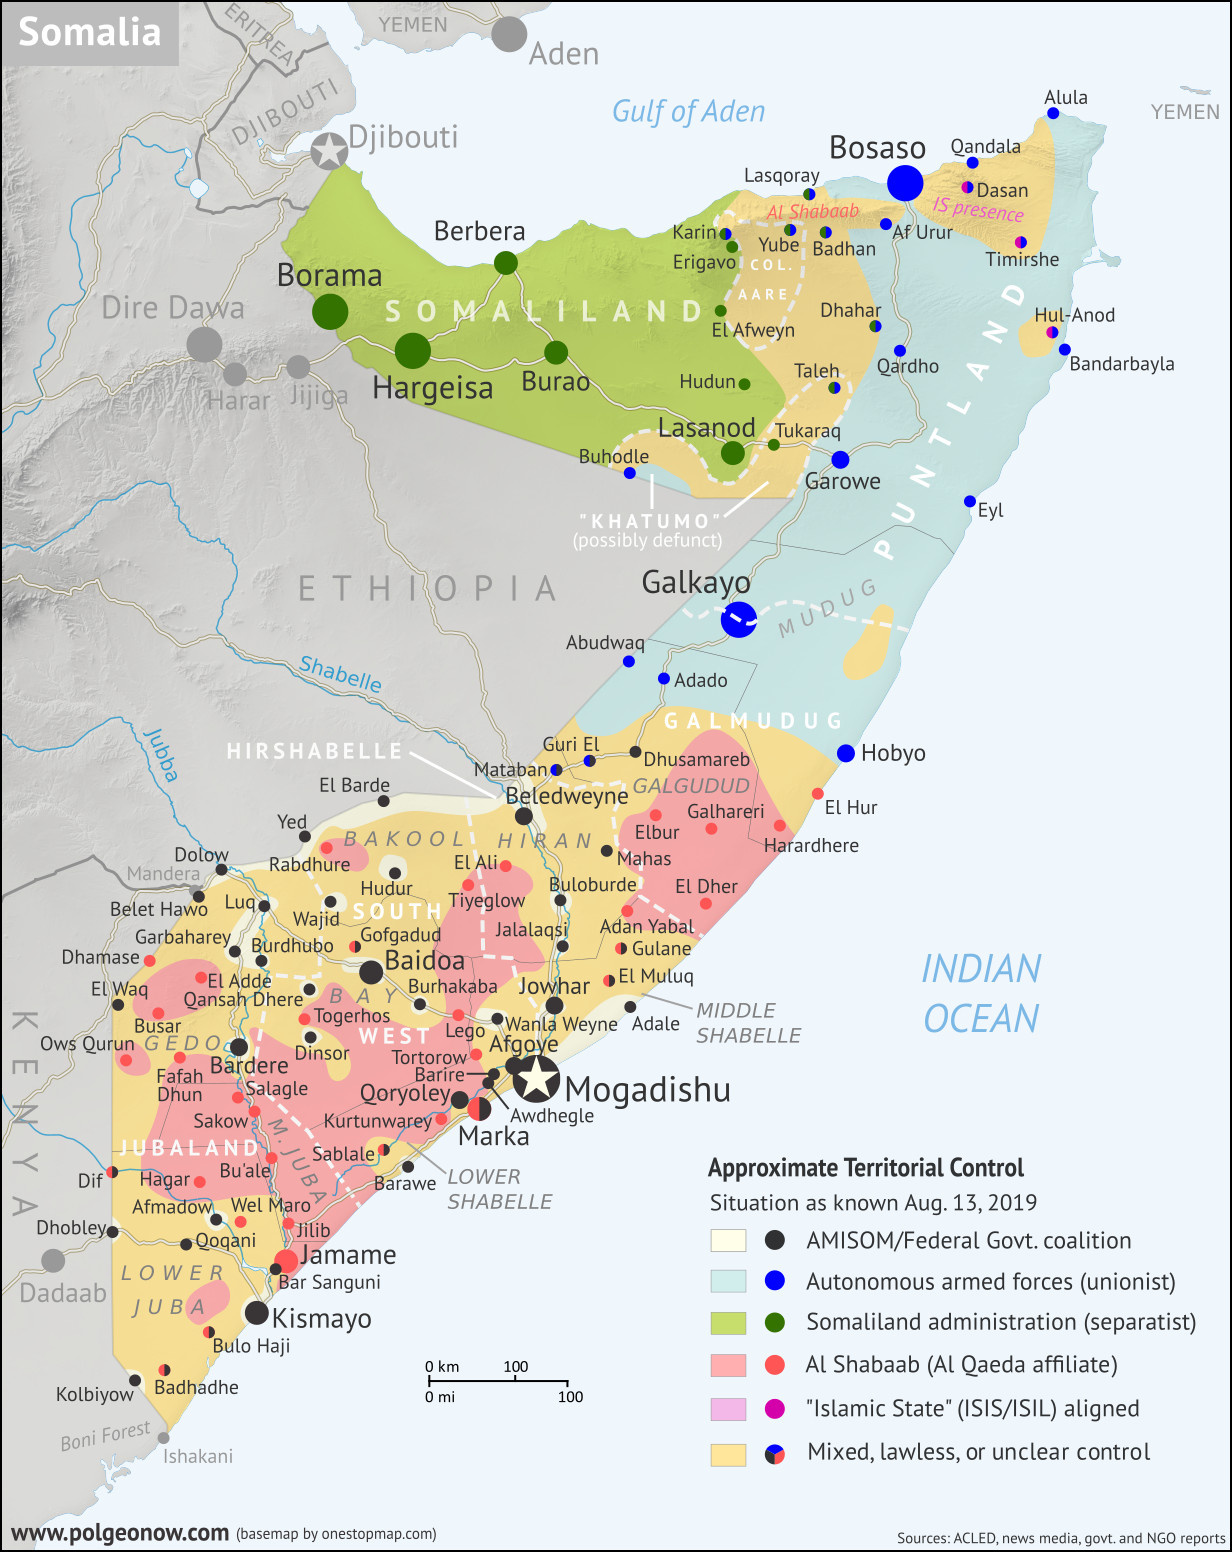 Who controls Somalia? Map (2019). With states, regions, and territorial control. Best Somalia control map online, thoroughly researched, detailed but concise. Shows territorial control by Federal Government of Somalia (FGS), Al Shabaab, so-called Islamic State (ISIS/ISIL), separatist Somaliland, and autonomous states Puntland, Galmudug, and Khatumo. Also shows boundaries of Jubaland, South West, and Hirshabelle federal states, as well as ares of operation of  anti-Somaliland militias of Khatumo and Colonel Aare. Updated to August 13, 2019. Colorblind accessible.